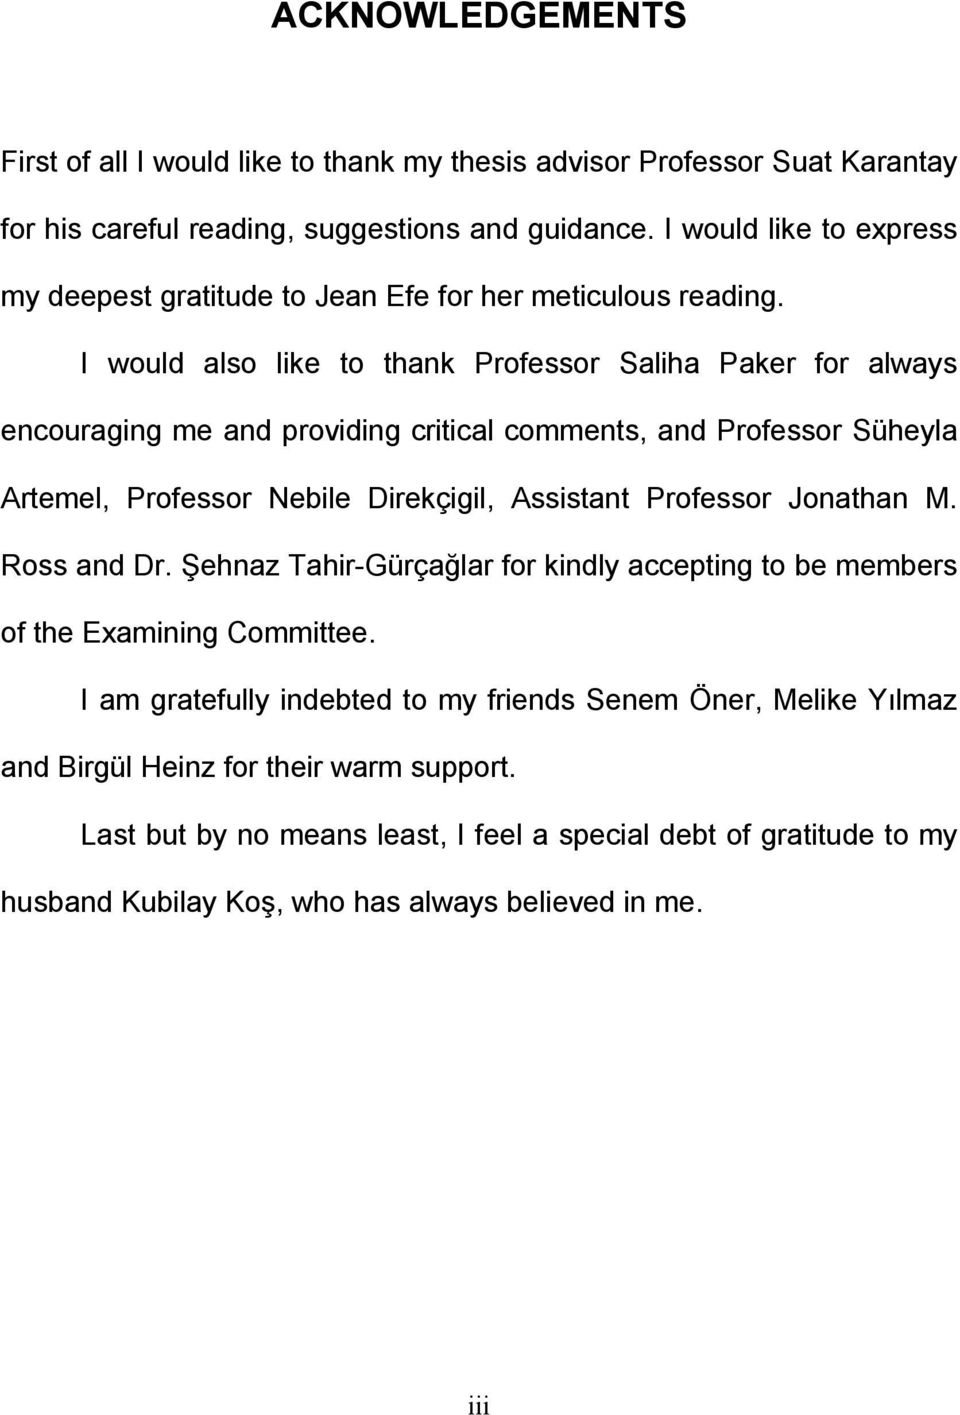 I would also like to thank Professor Saliha Paker for always encouraging me and providing critical comments, and Professor Süheyla Artemel, Professor Nebile Direkçigil, Assistant Professor